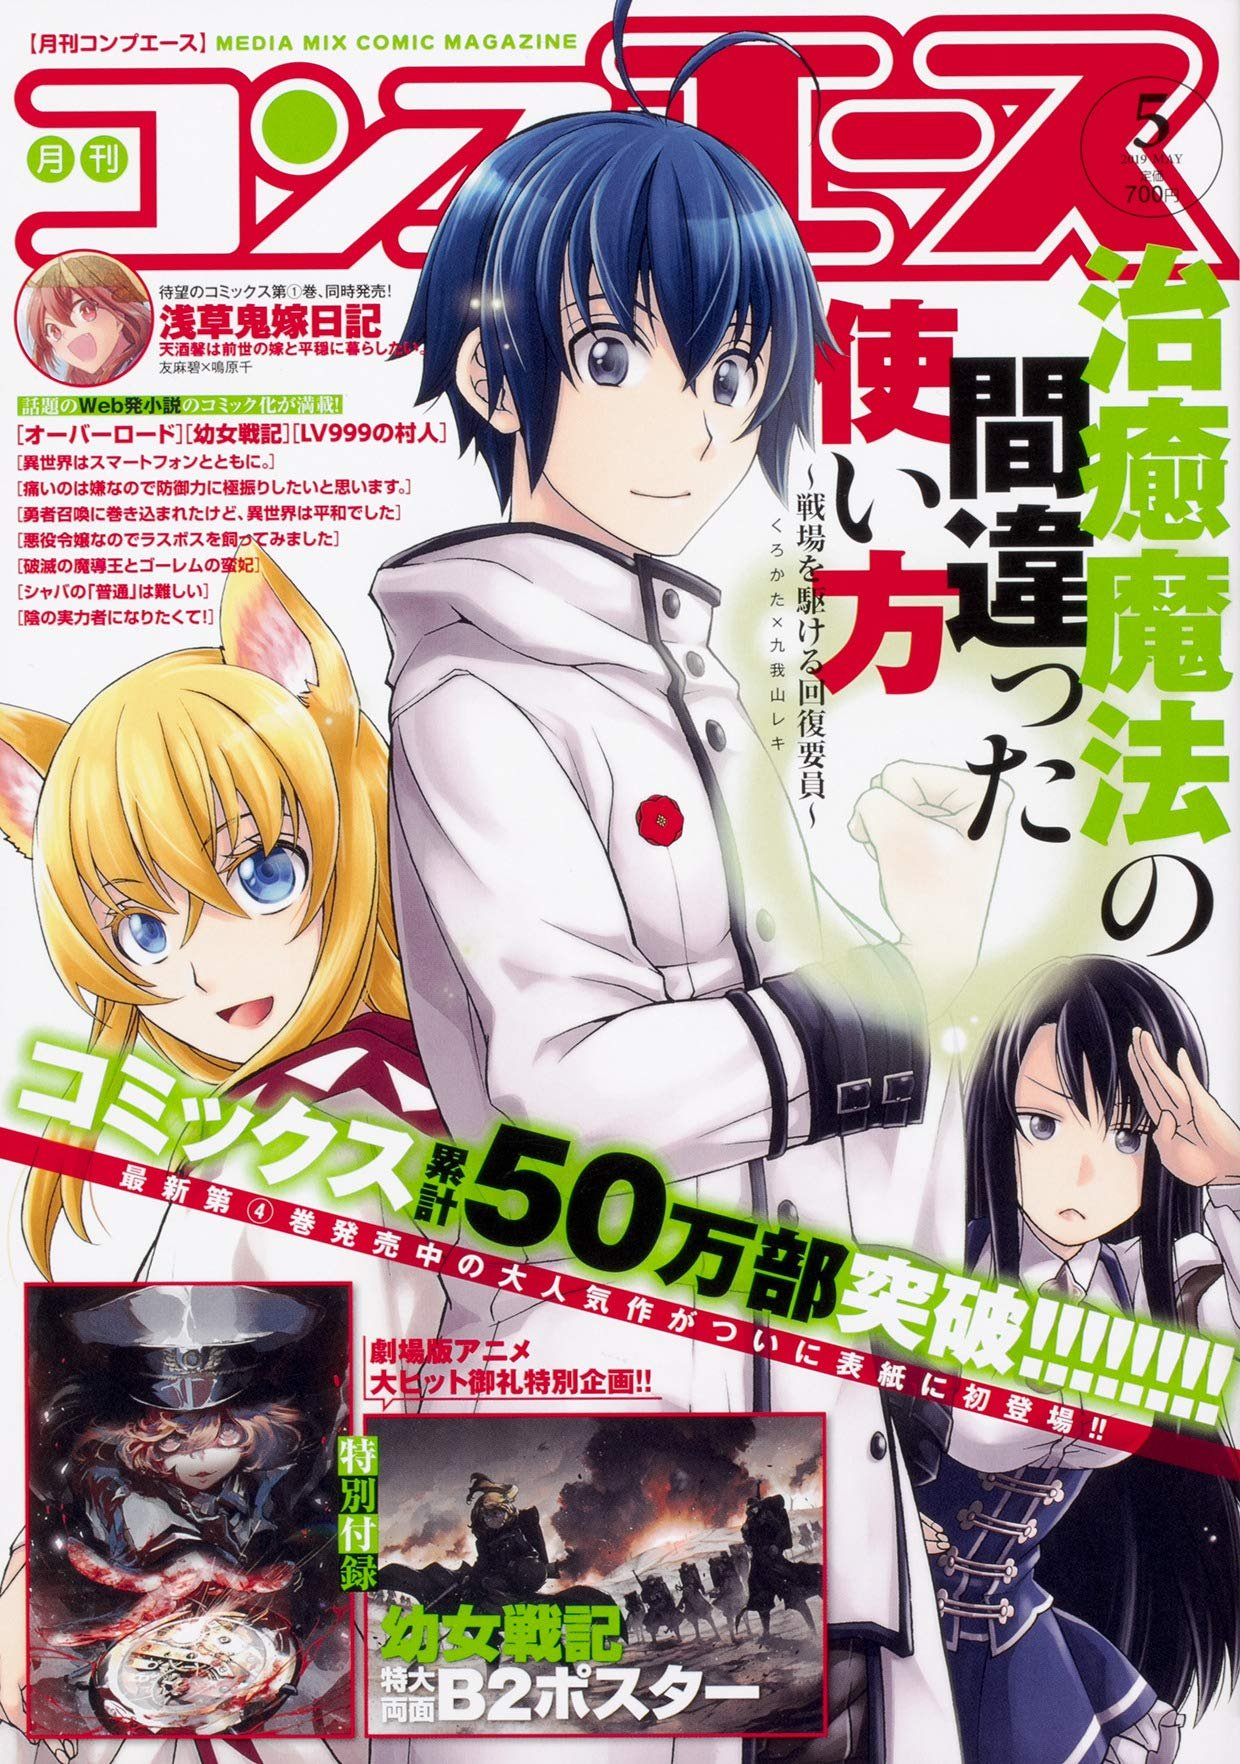 Comp Ace Issue 160 (newsstand) (May 2019)